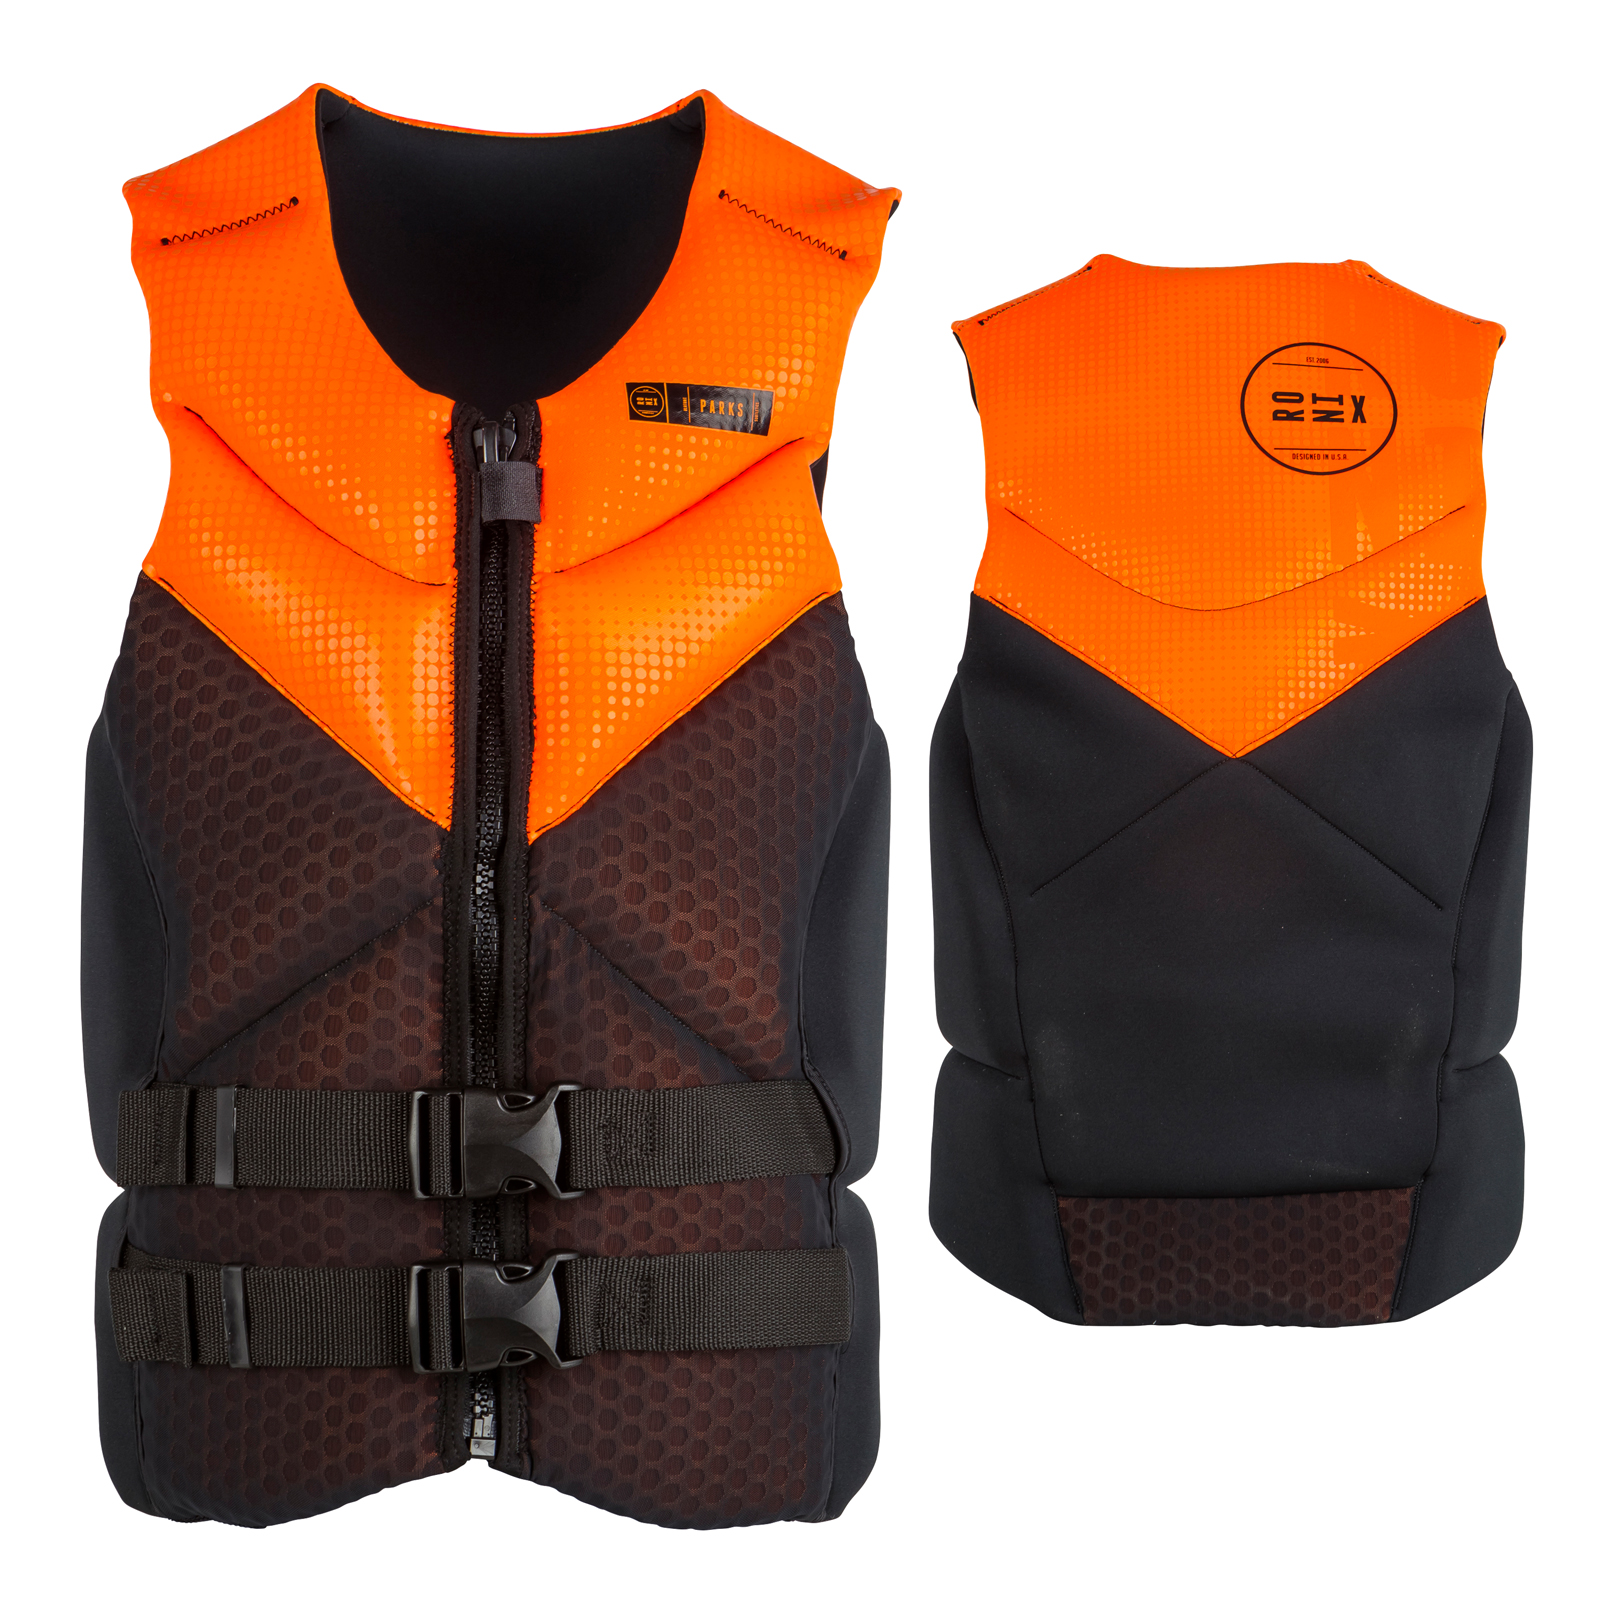 PARKS CAPELLA VEST ORANGE RONIX 2017